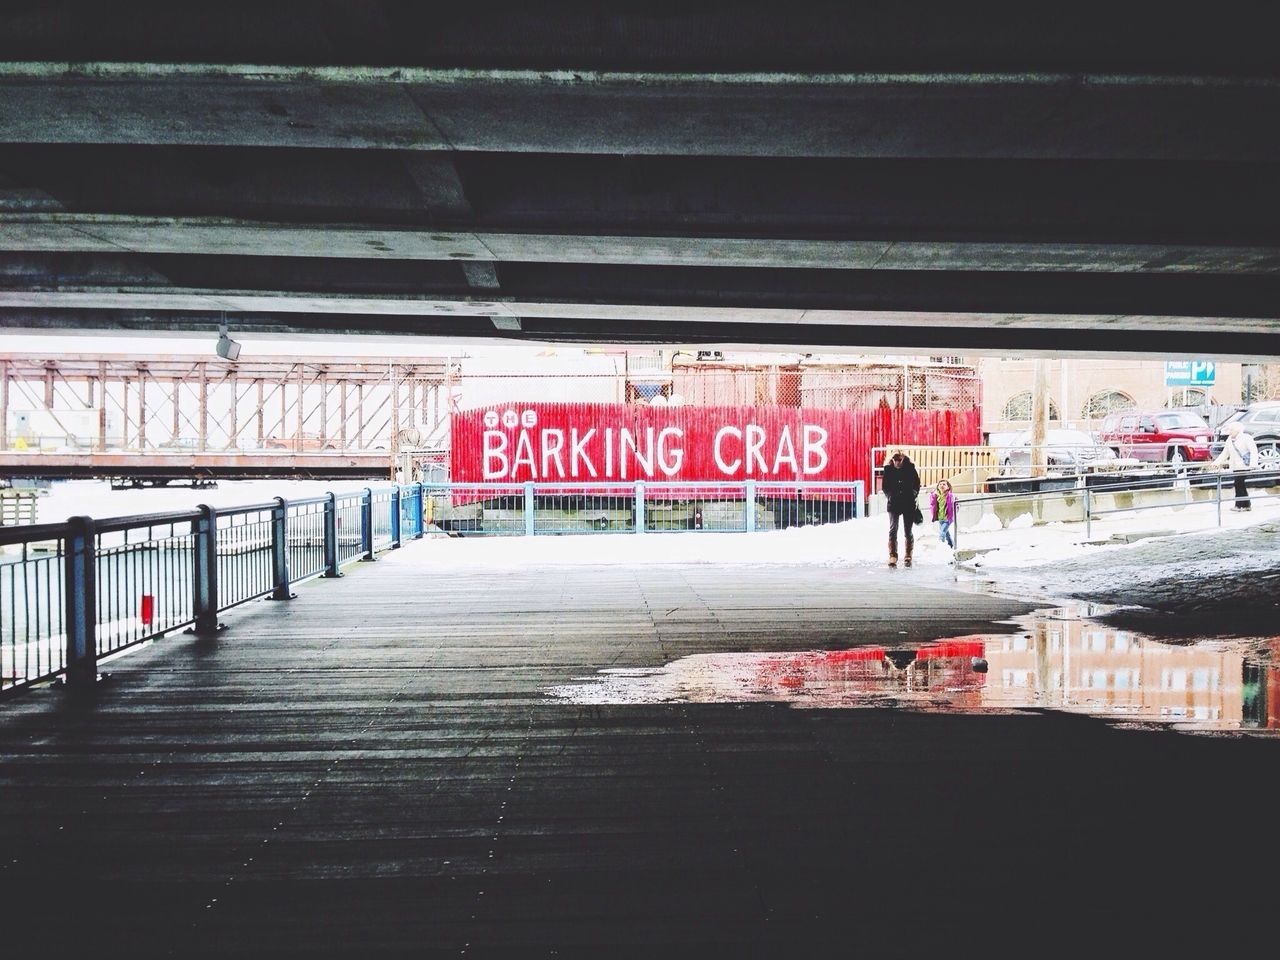 Man walking under bridge